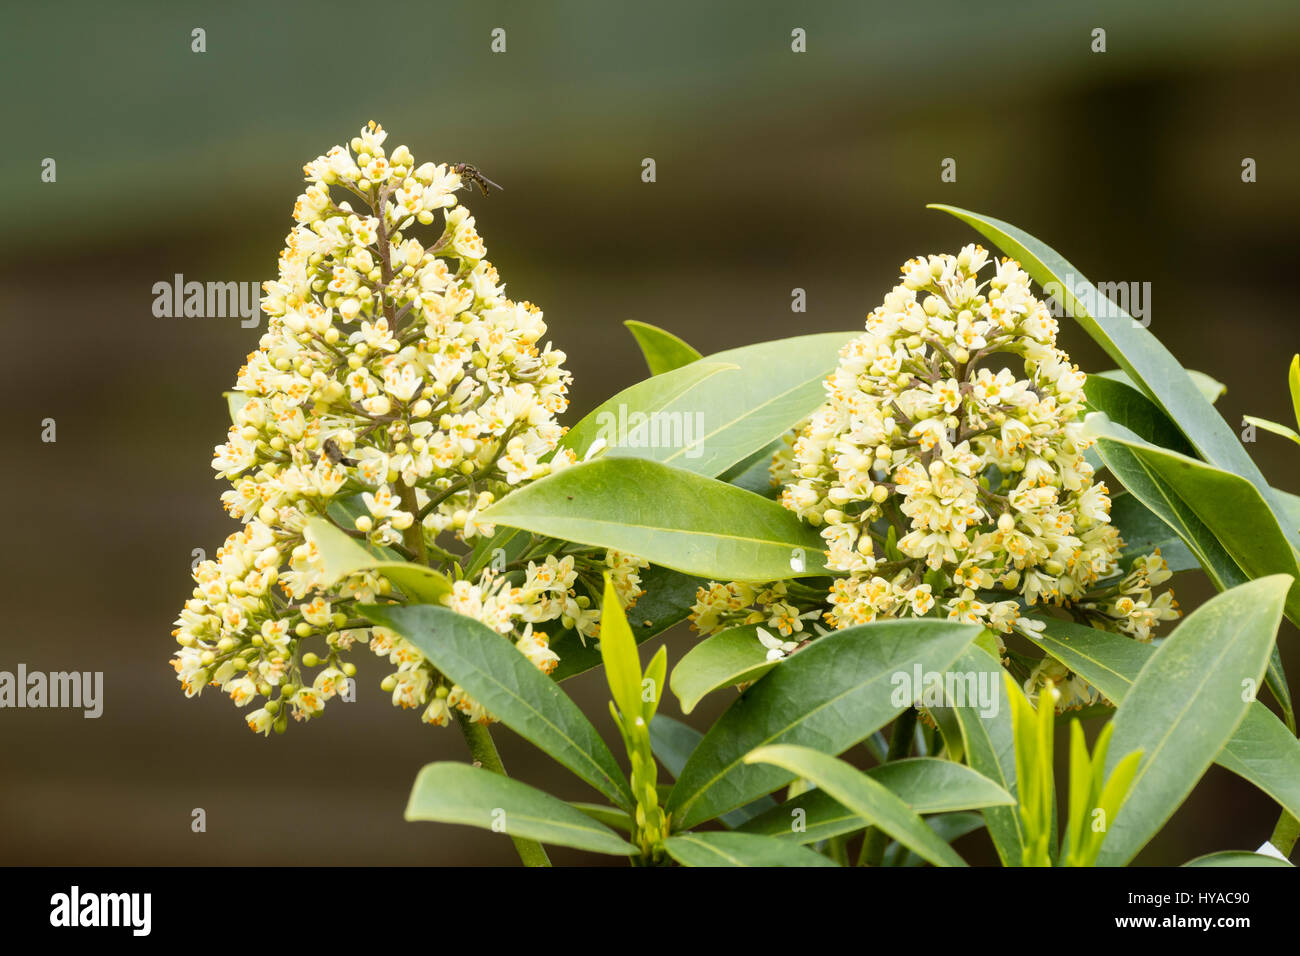 Scented spring flower head of the hardy evergreen shrub skimmia scented spring flower head of the hardy evergreen shrub skimmia japonica kew white mightylinksfo